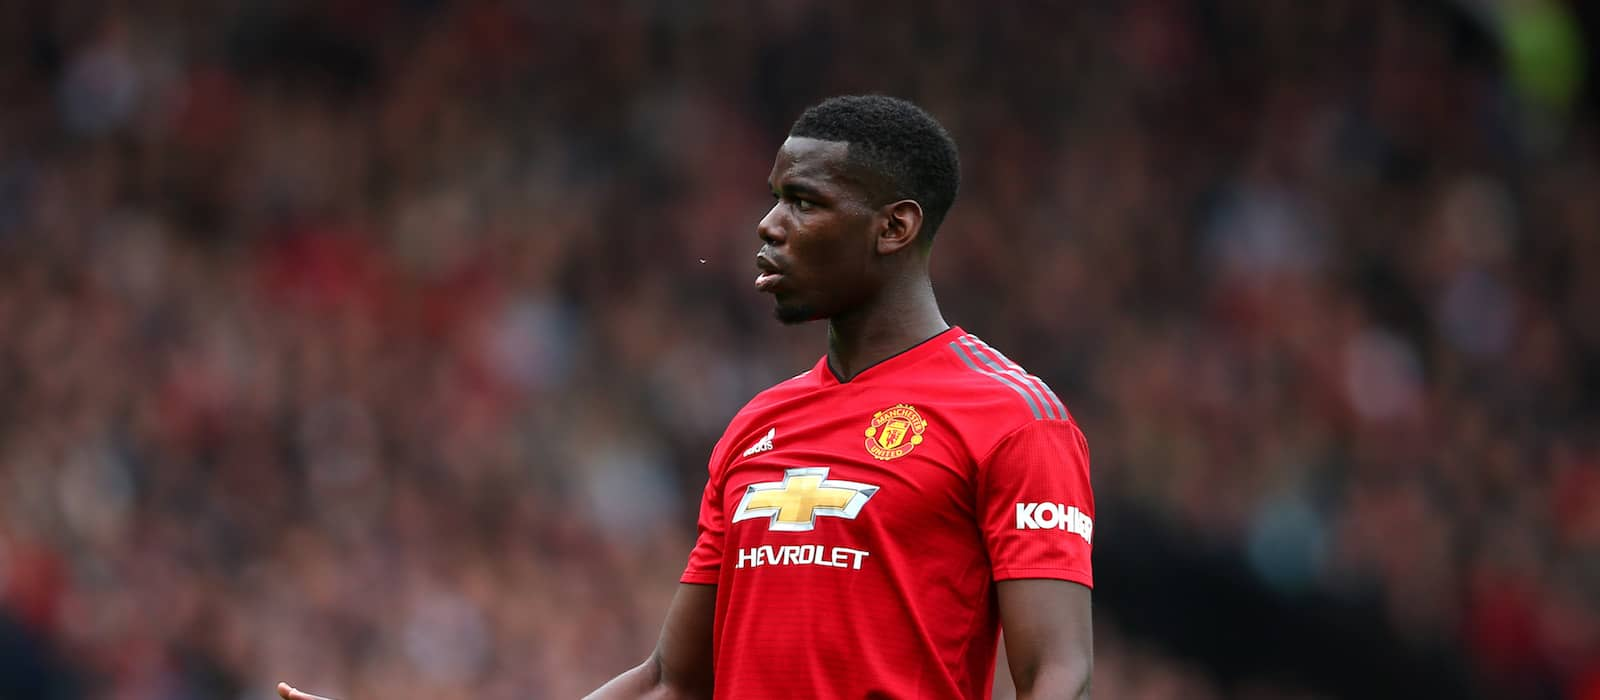 Paul Pogba, Aaron Wan-Bissaka, Luke Shaw to return for Liverpool clash